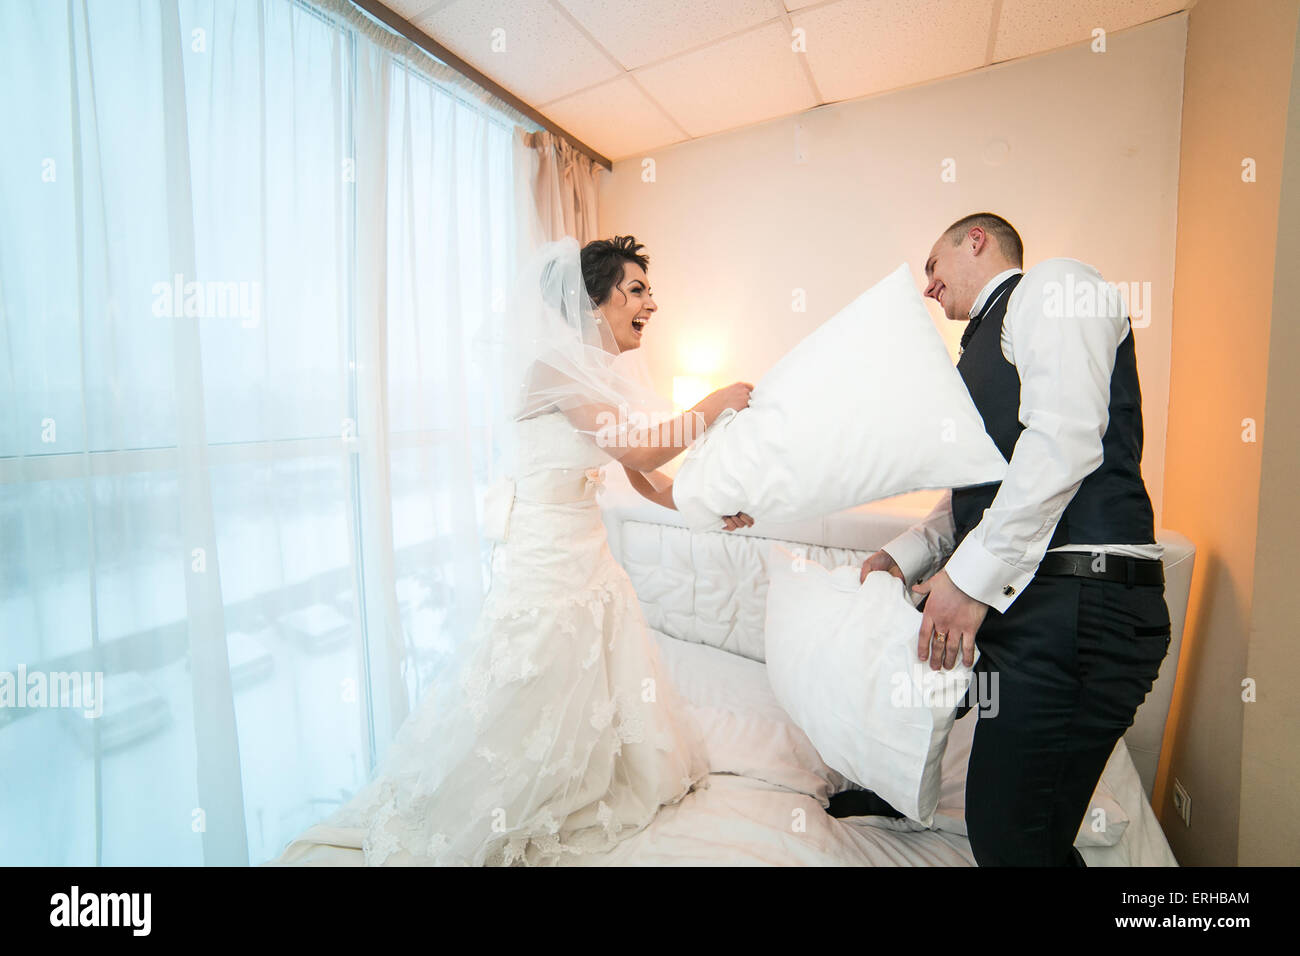 Pillow fight of bride and groom in a hotel room - Stock Image